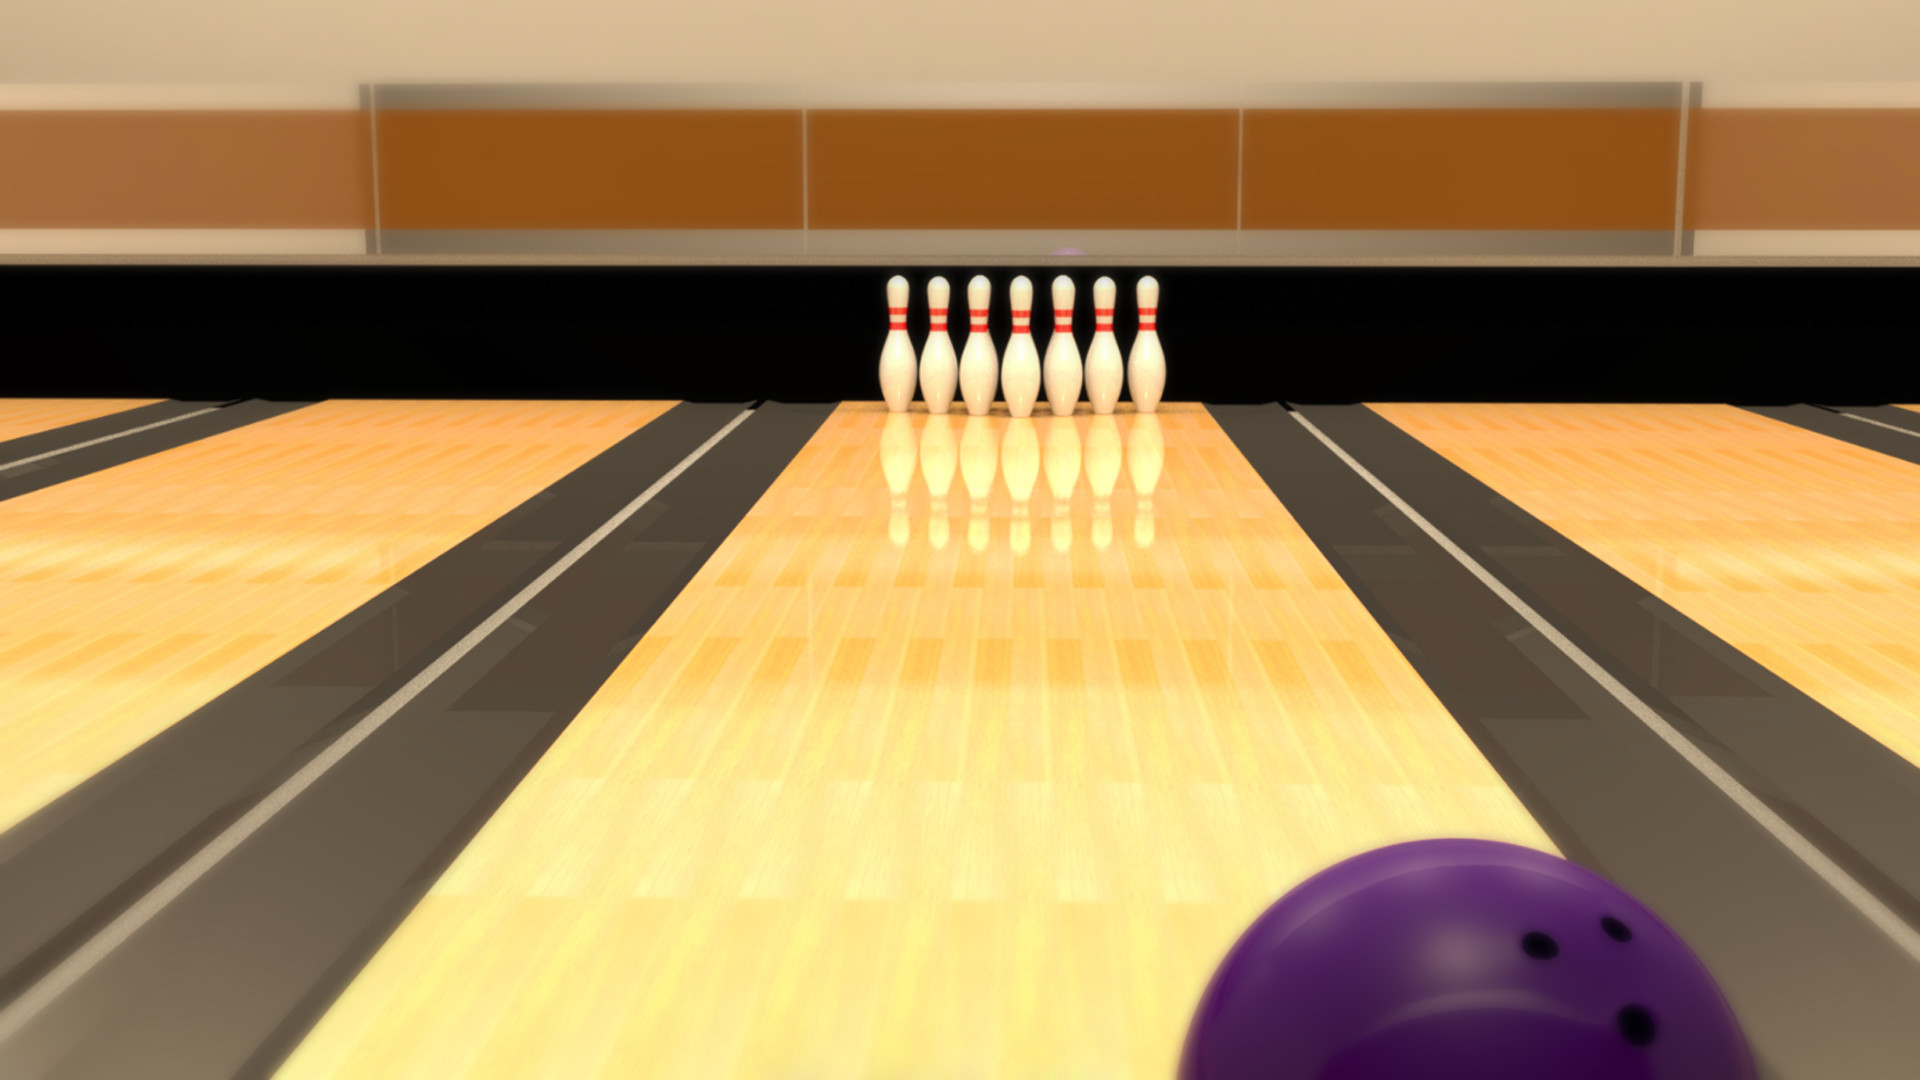 Rajesh sawant bowling alley2